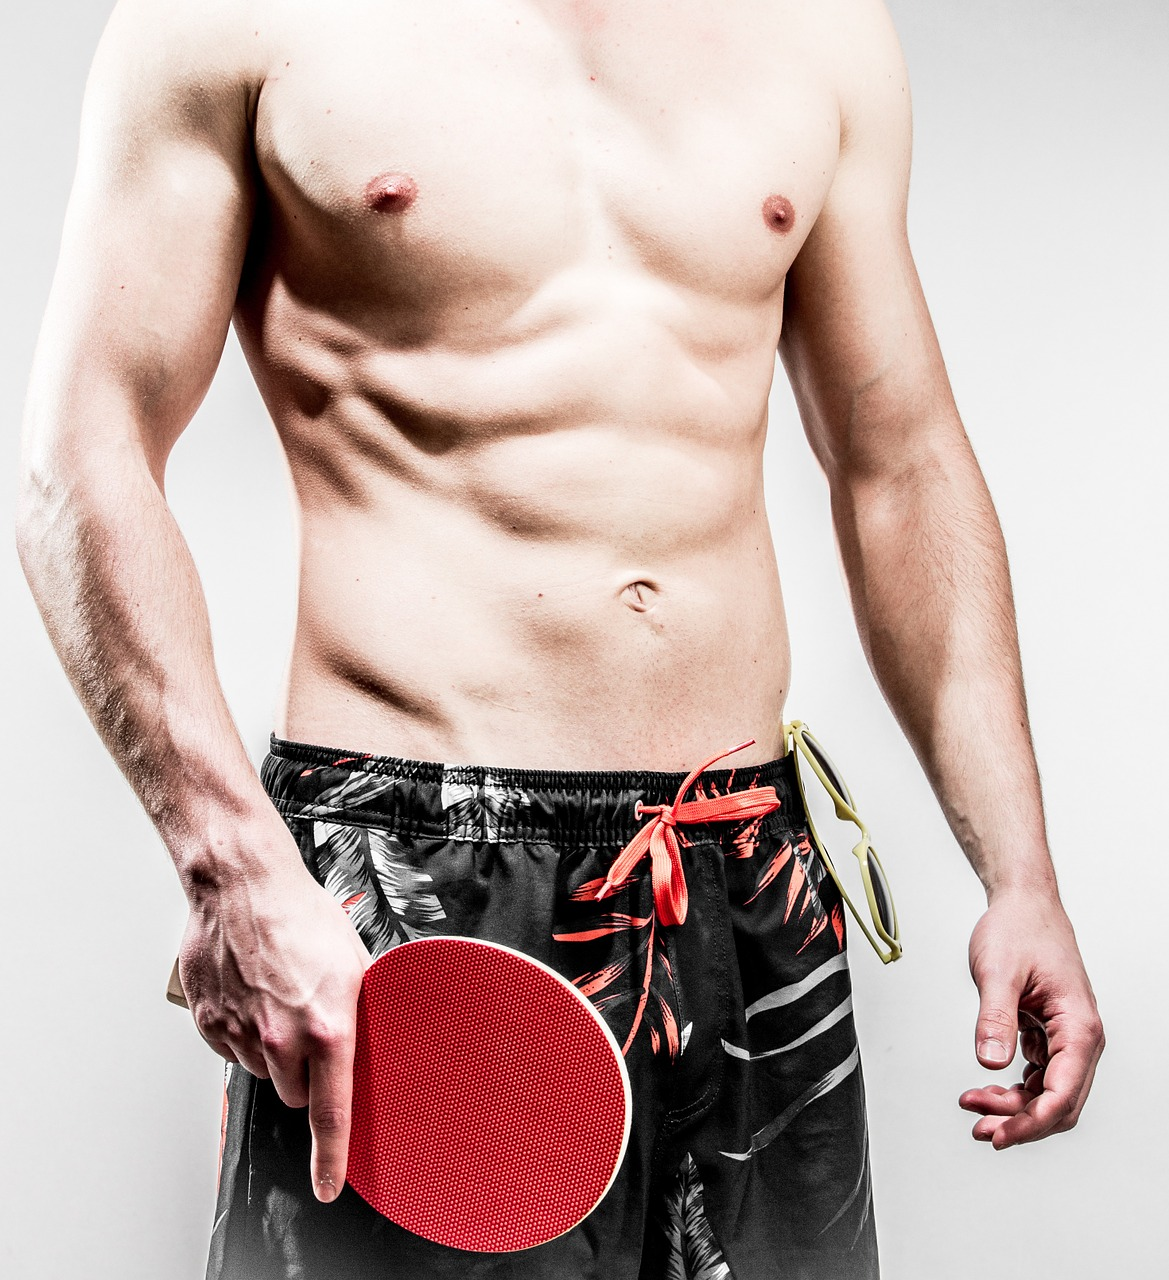 table-tennis-1432174_1280